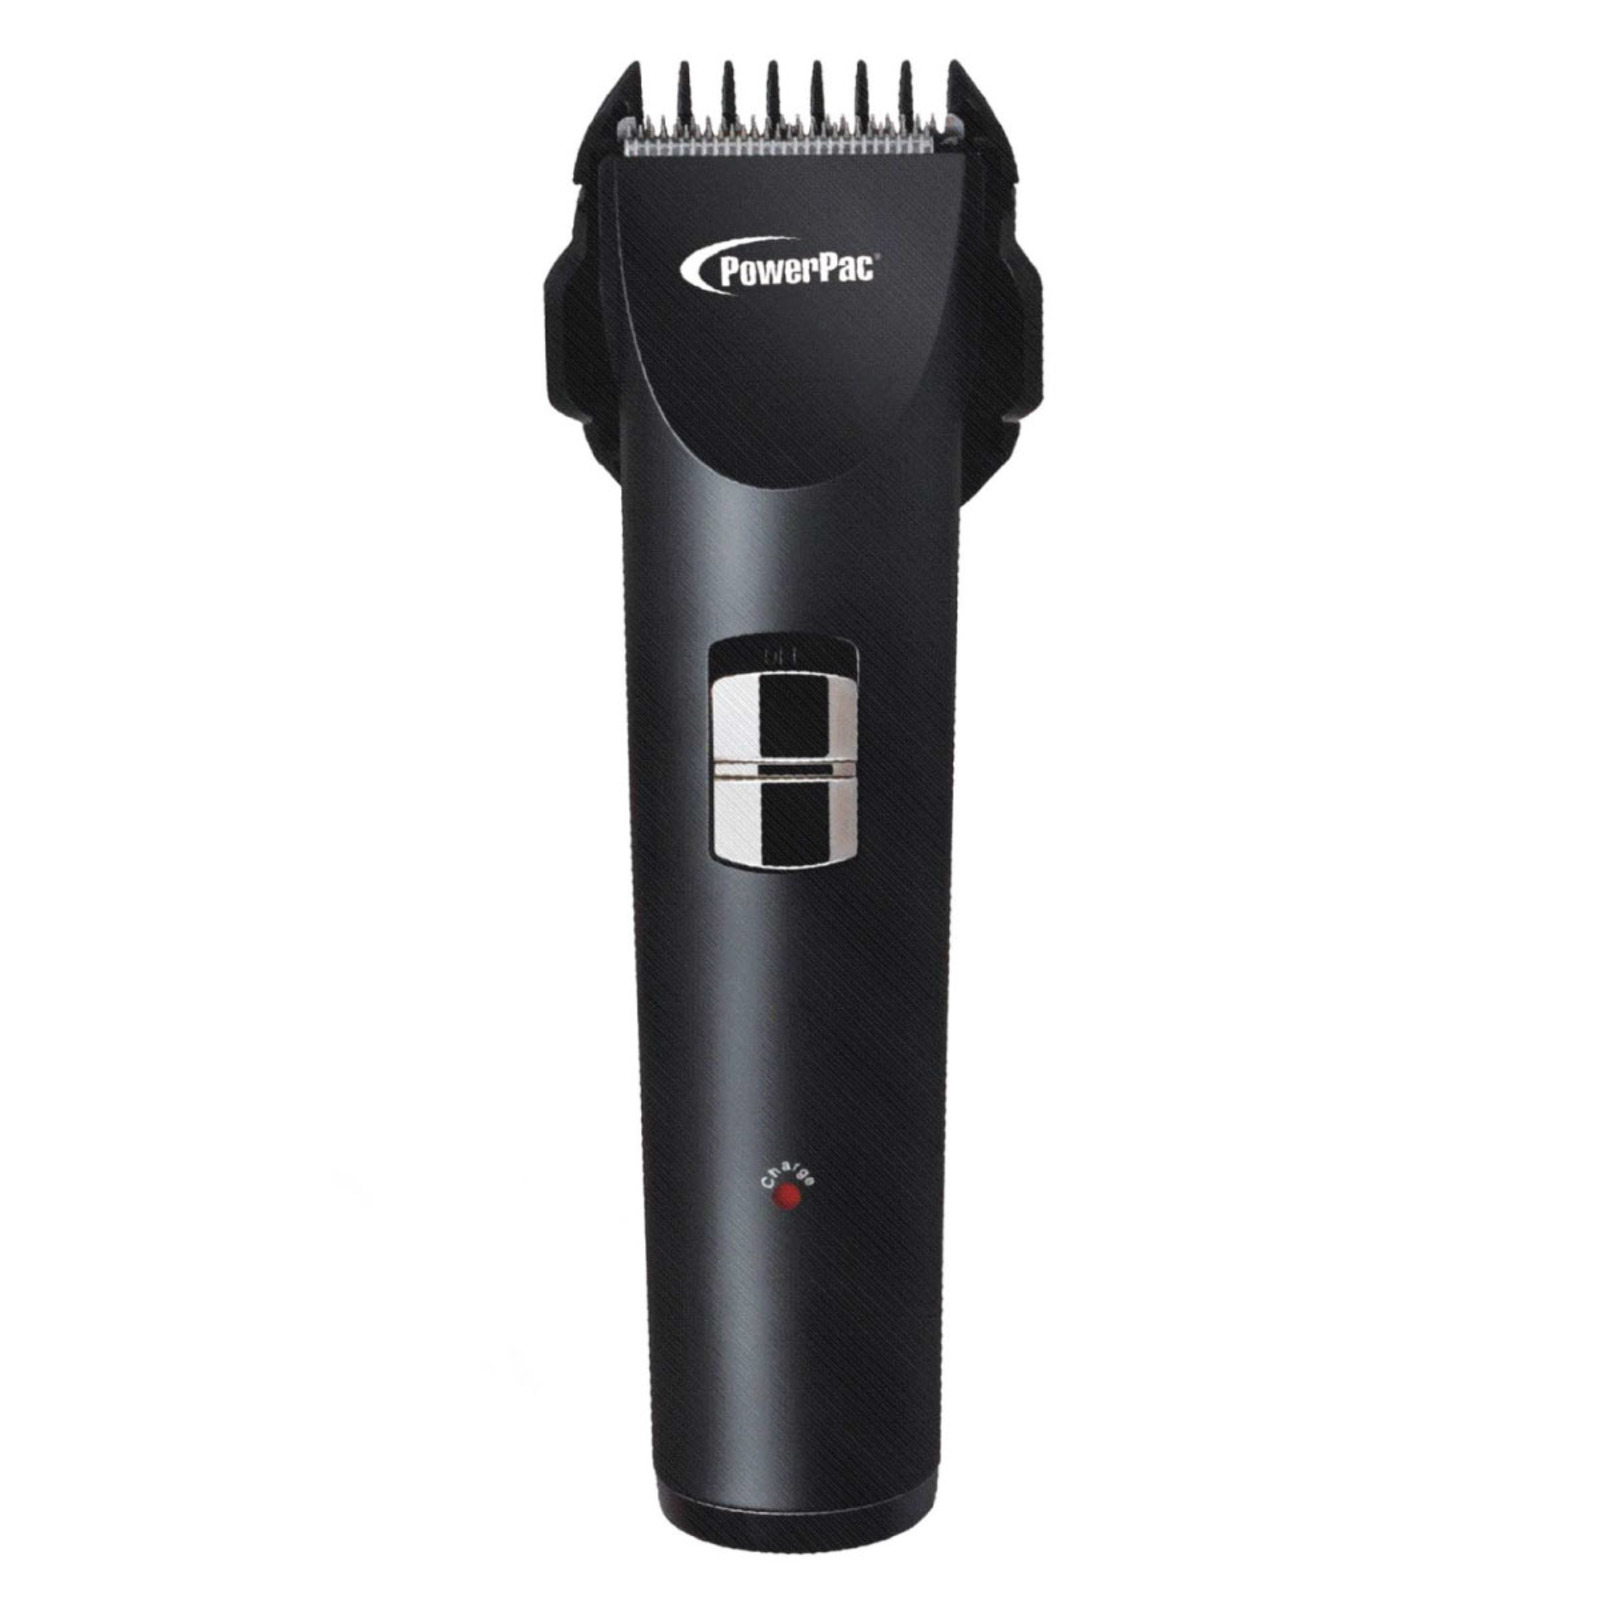 PowerPac Cordless Hair Cutter With Adjustable Disc PP2028